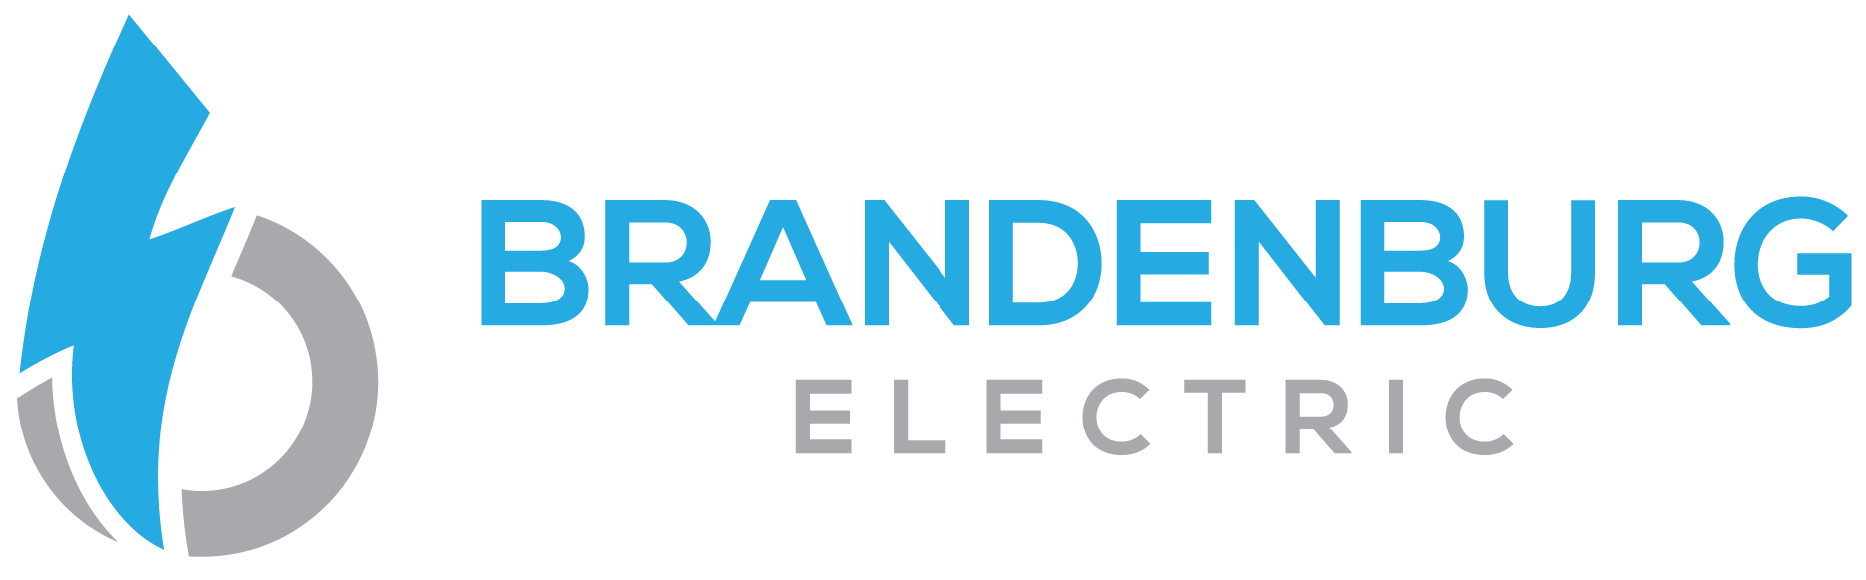 Brandenburg Electric